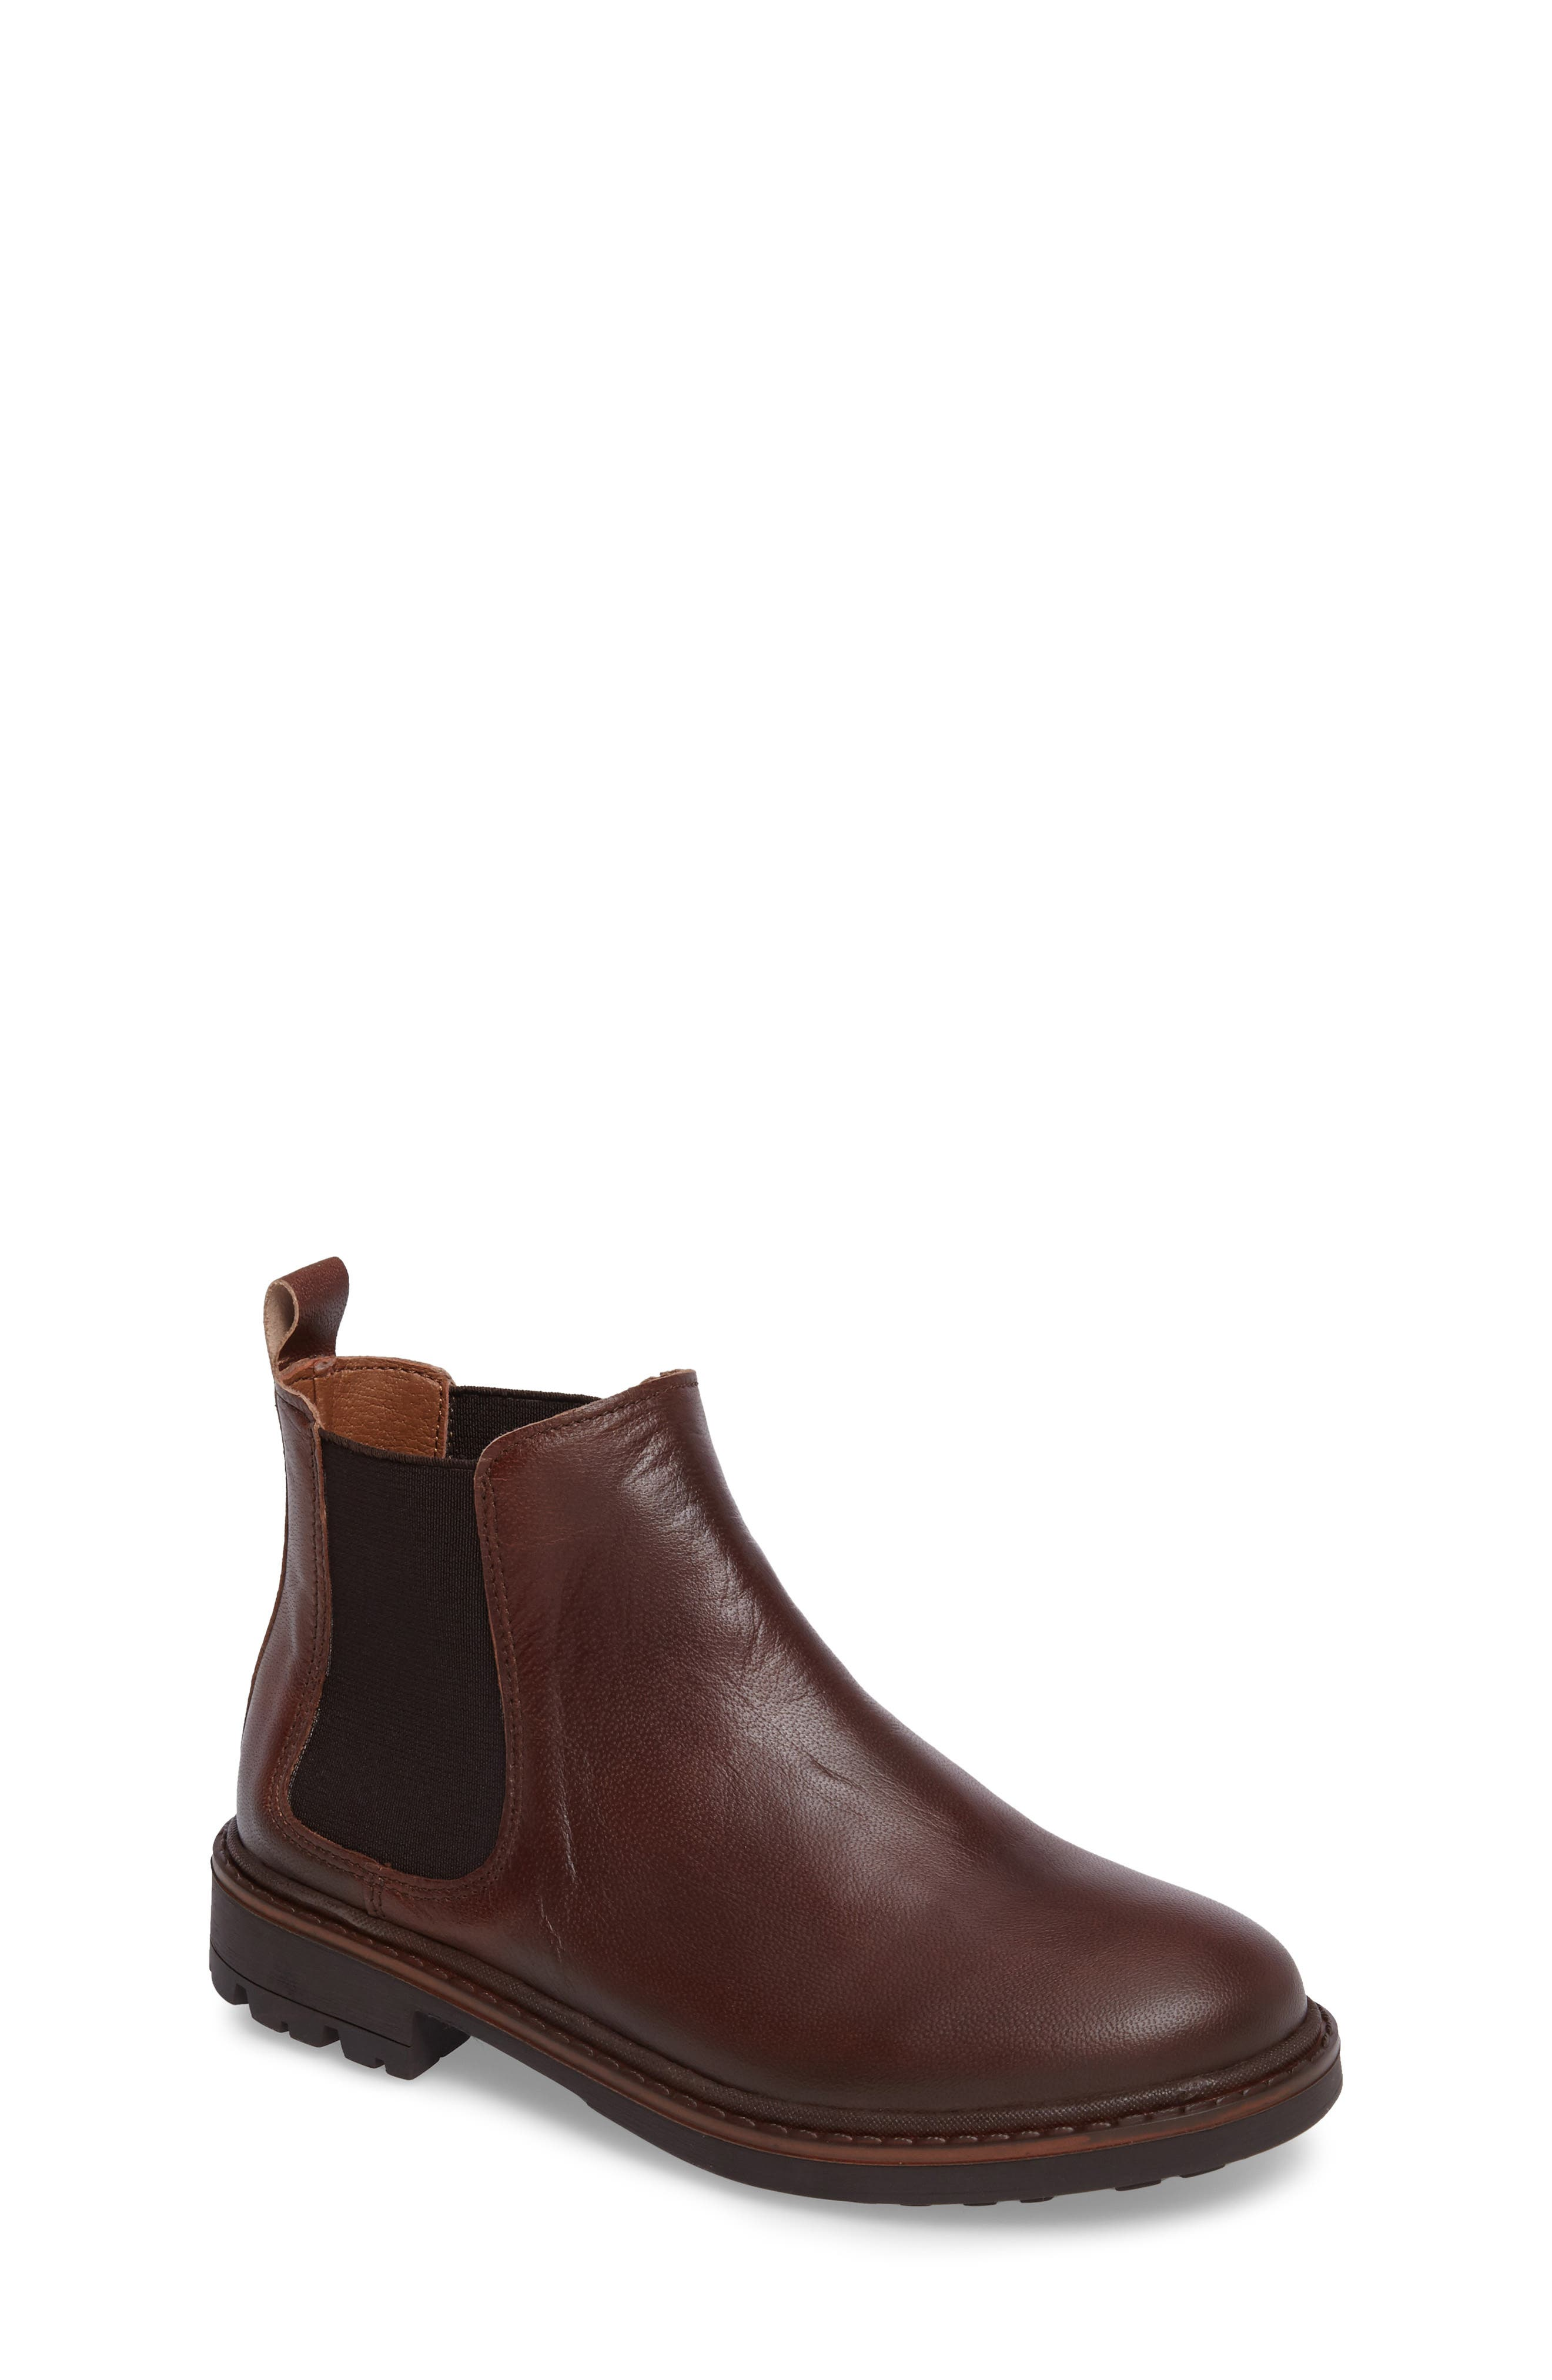 Alternate Image 1 Selected - Vince Camuto Taber Chelsea Boot (Toddler, Little Kid & Big Kid)